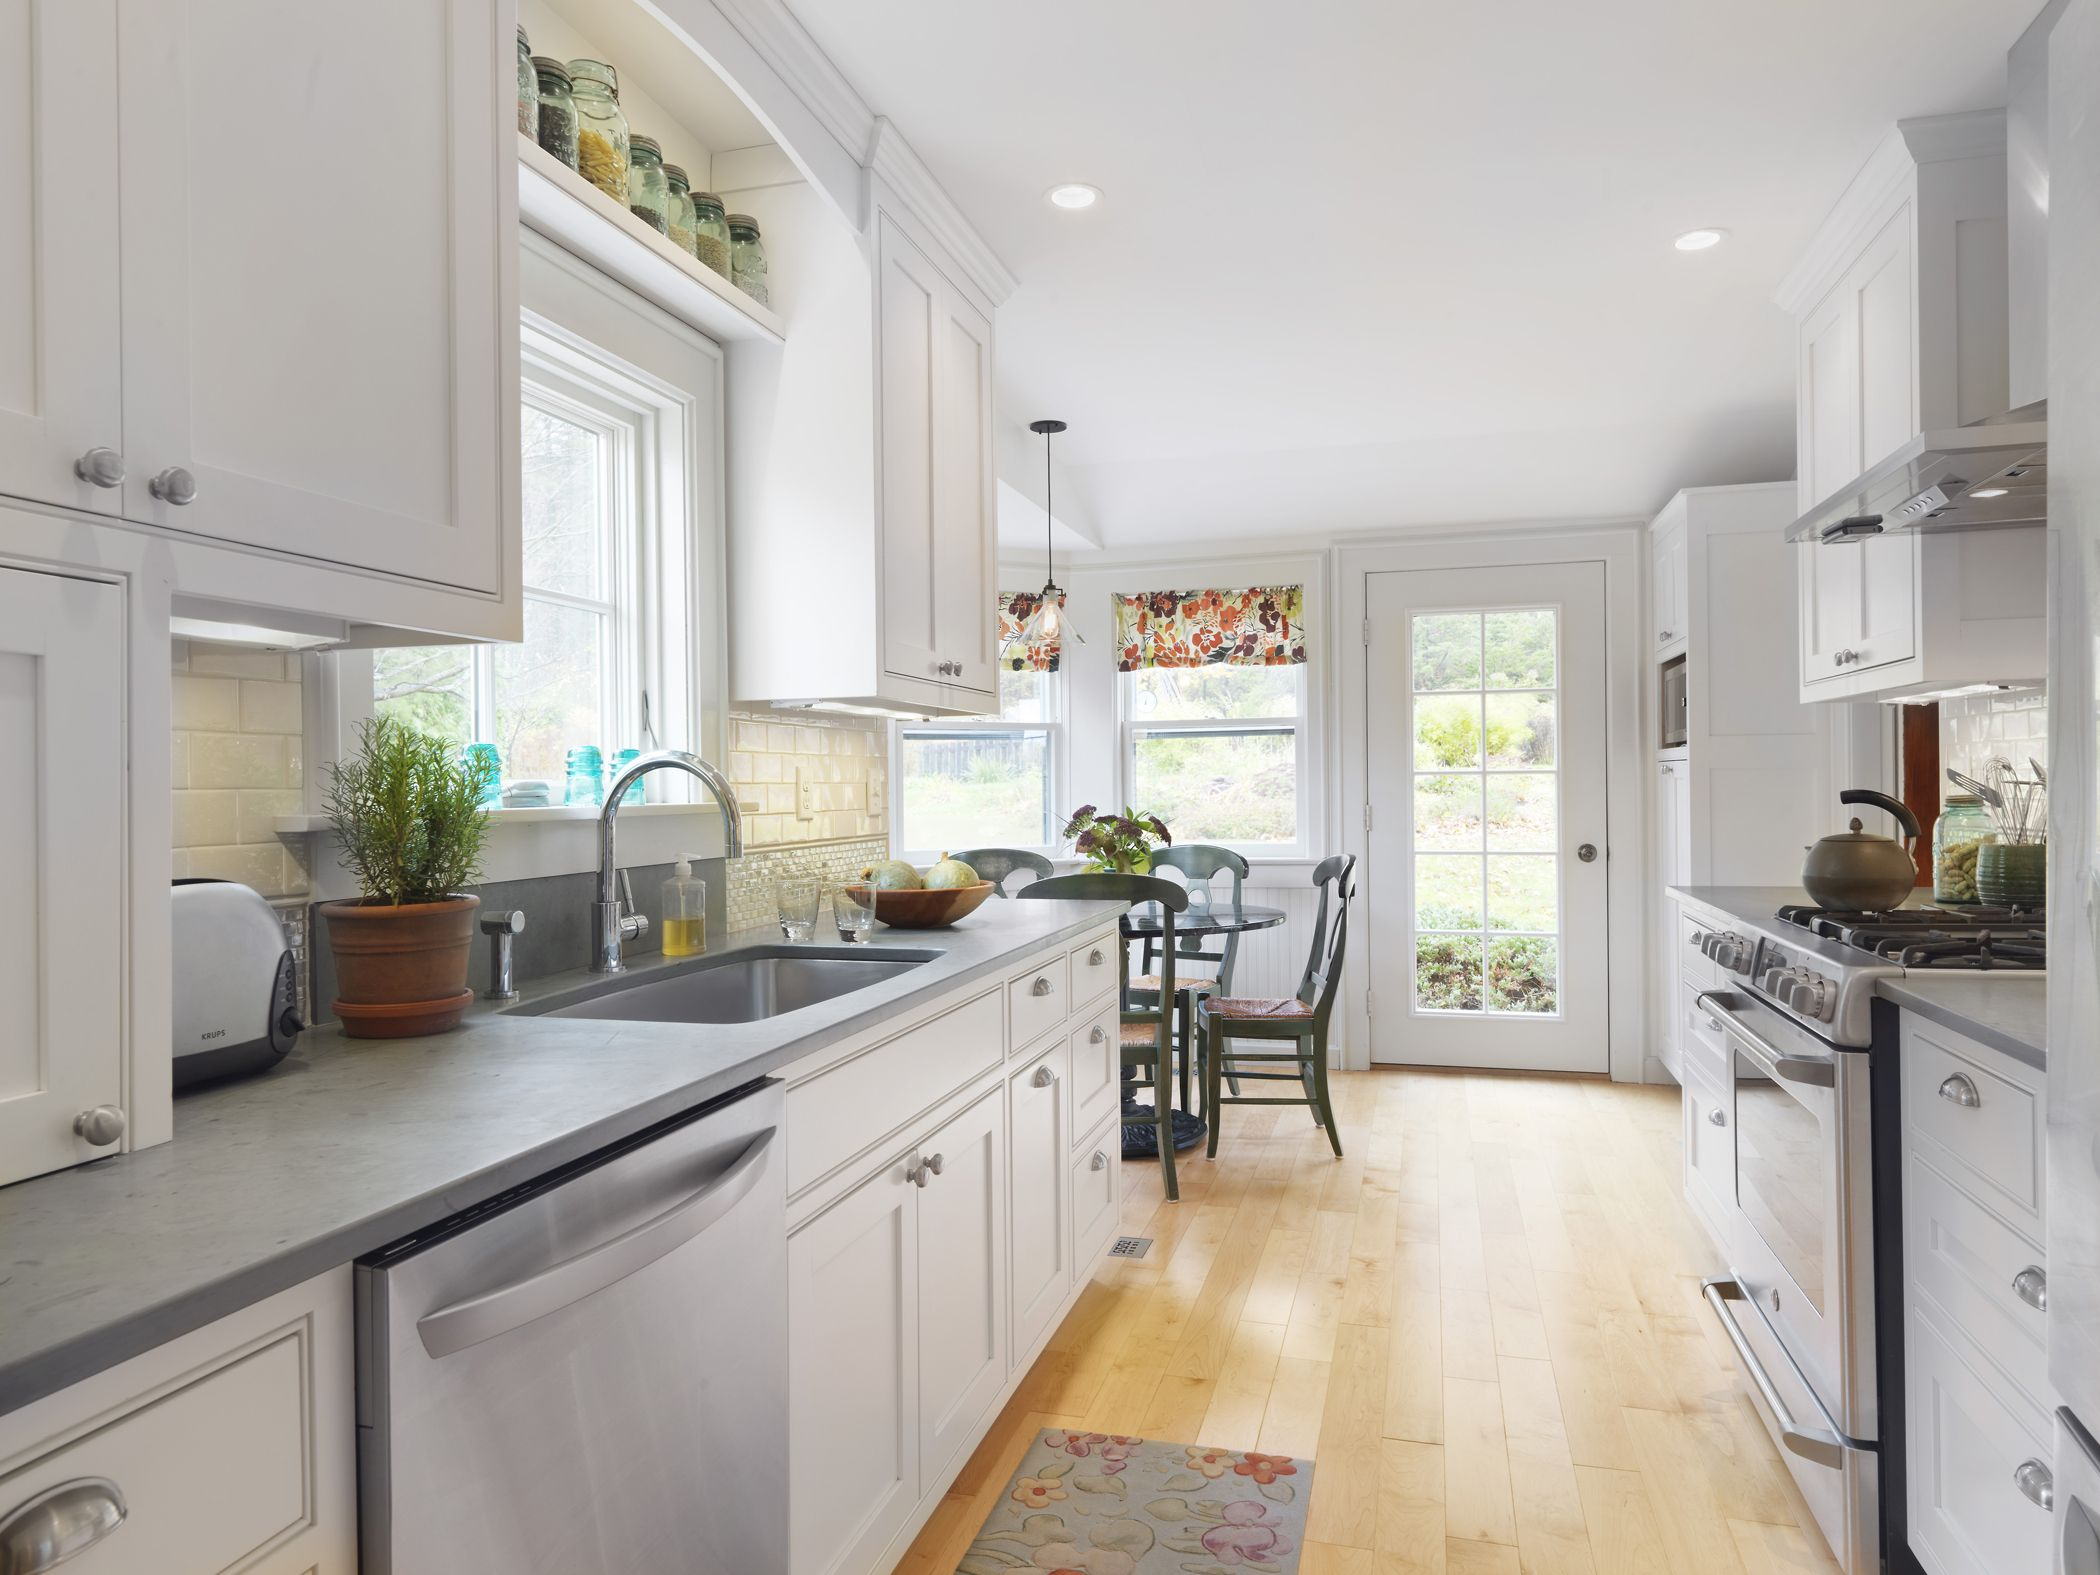 Galley Kitchen Remodel Plans Beautiful Galley Kitchen Remodel to